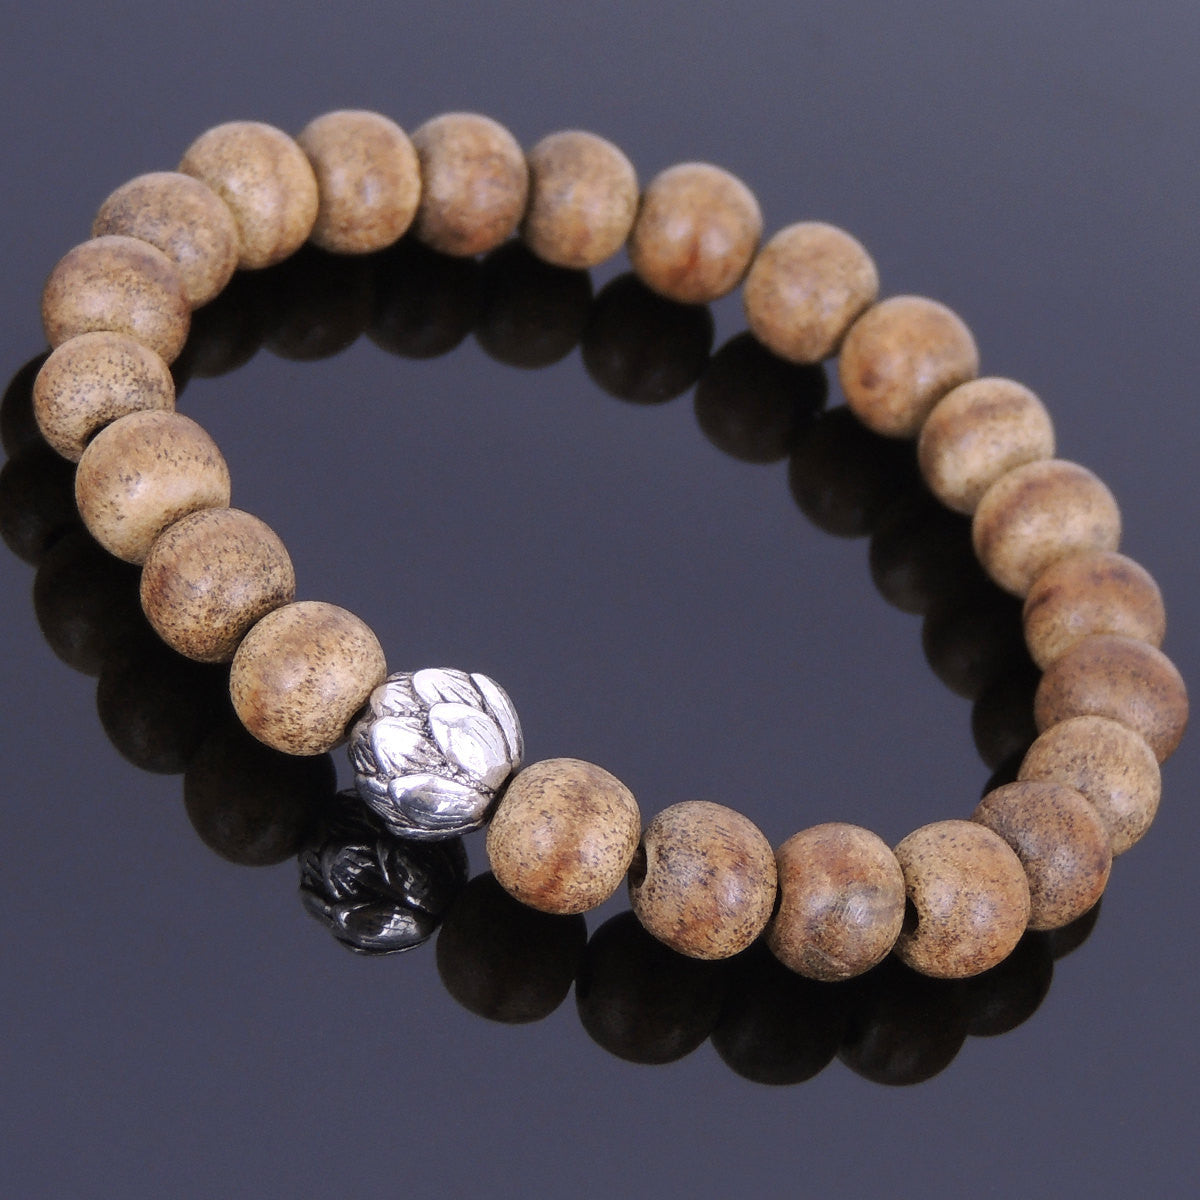 8mm Vietnam Agarwood Bracelet for Prayer & Meditation with Tibetan Silver Lotus Protection Bead - Handmade by Gem & Silver AWB002